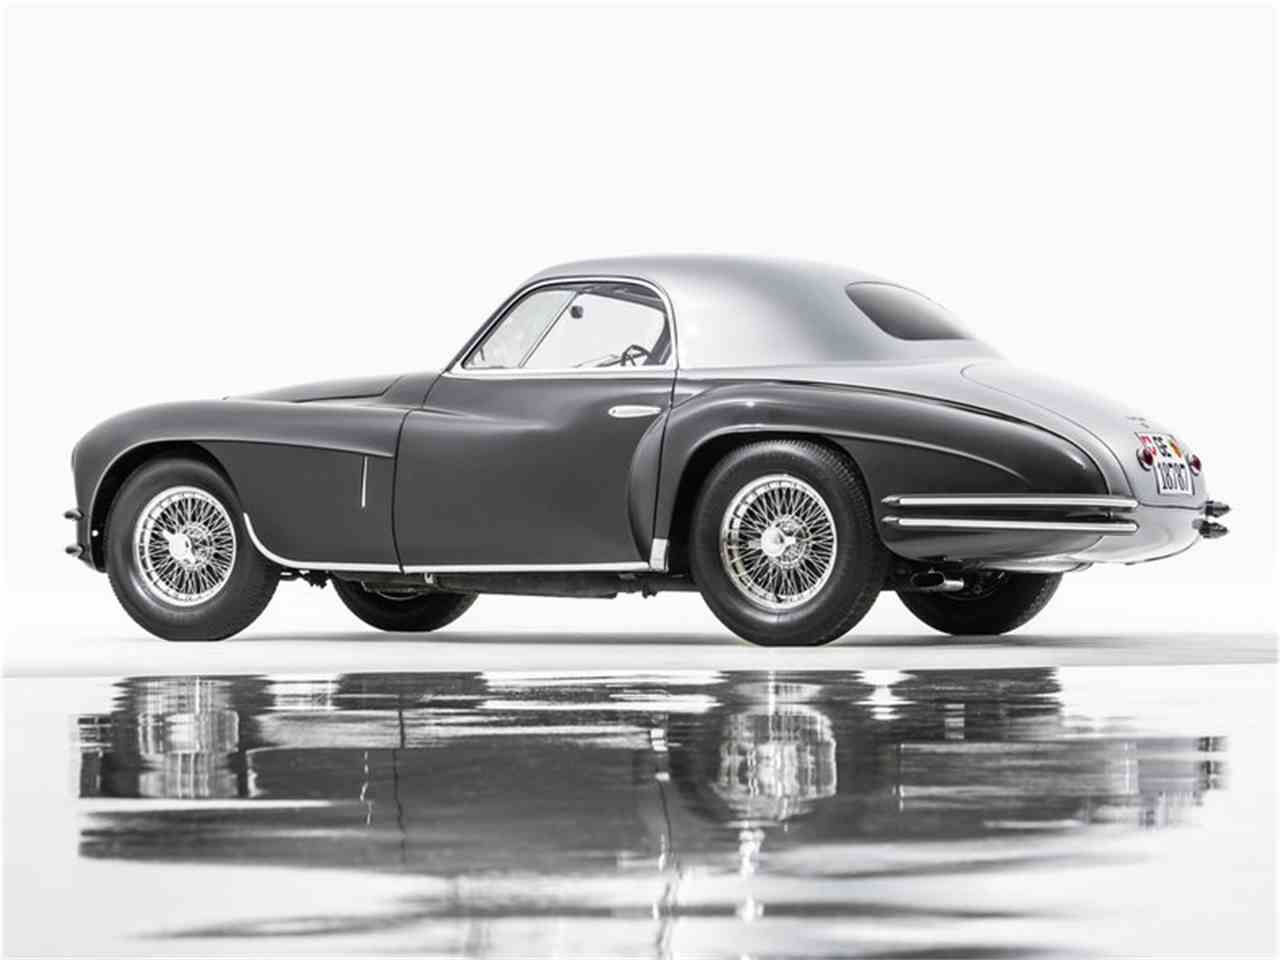 Large Picture of 1949 6C 2500 SSC located in Newport Beach California Auction Vehicle Offered by Morris and Welford - MZAQ